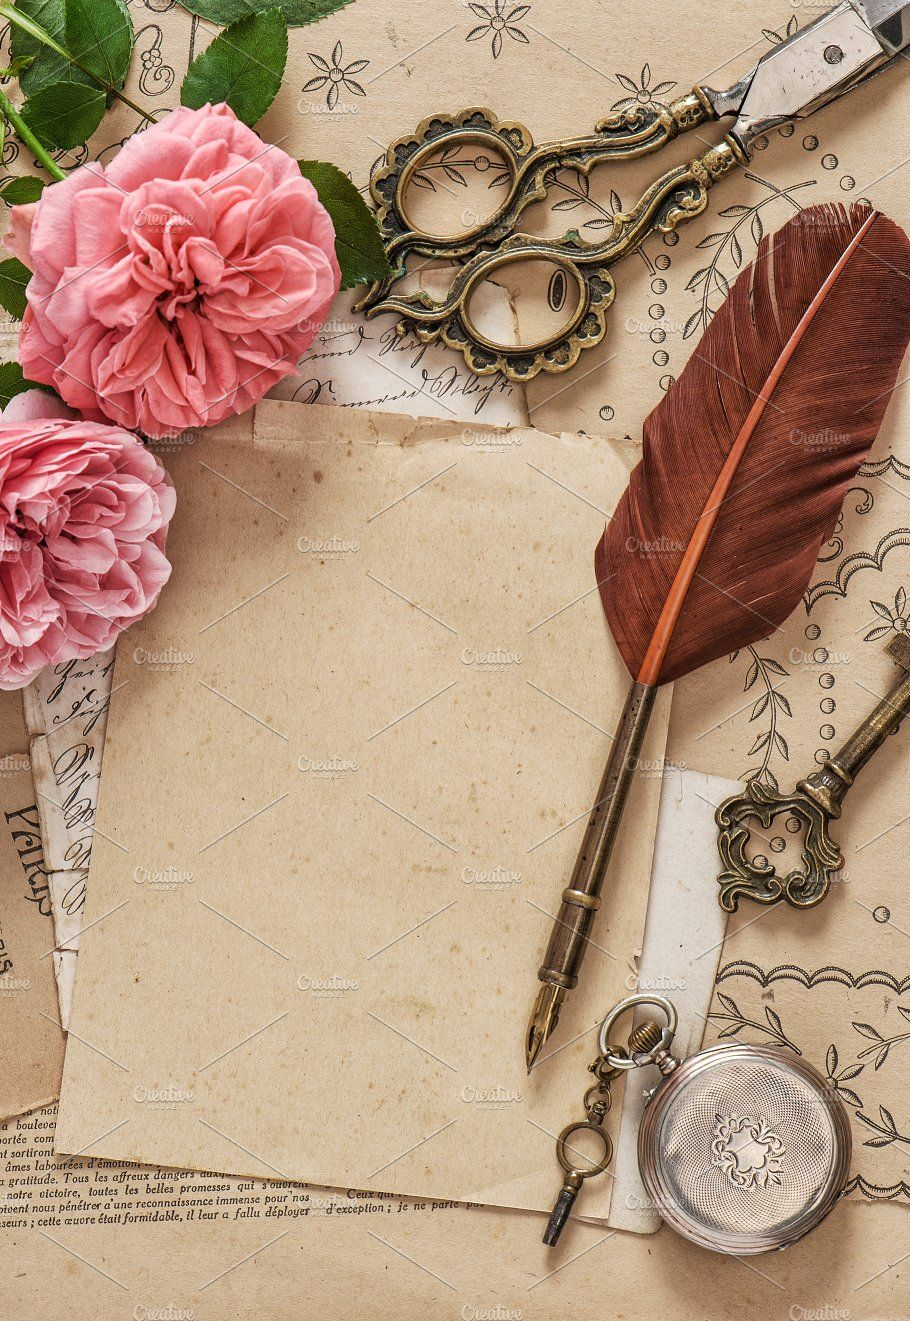 Old Letters Rose Flowers Antique Pen Old Letters Letter Photography Background Images For Quotes